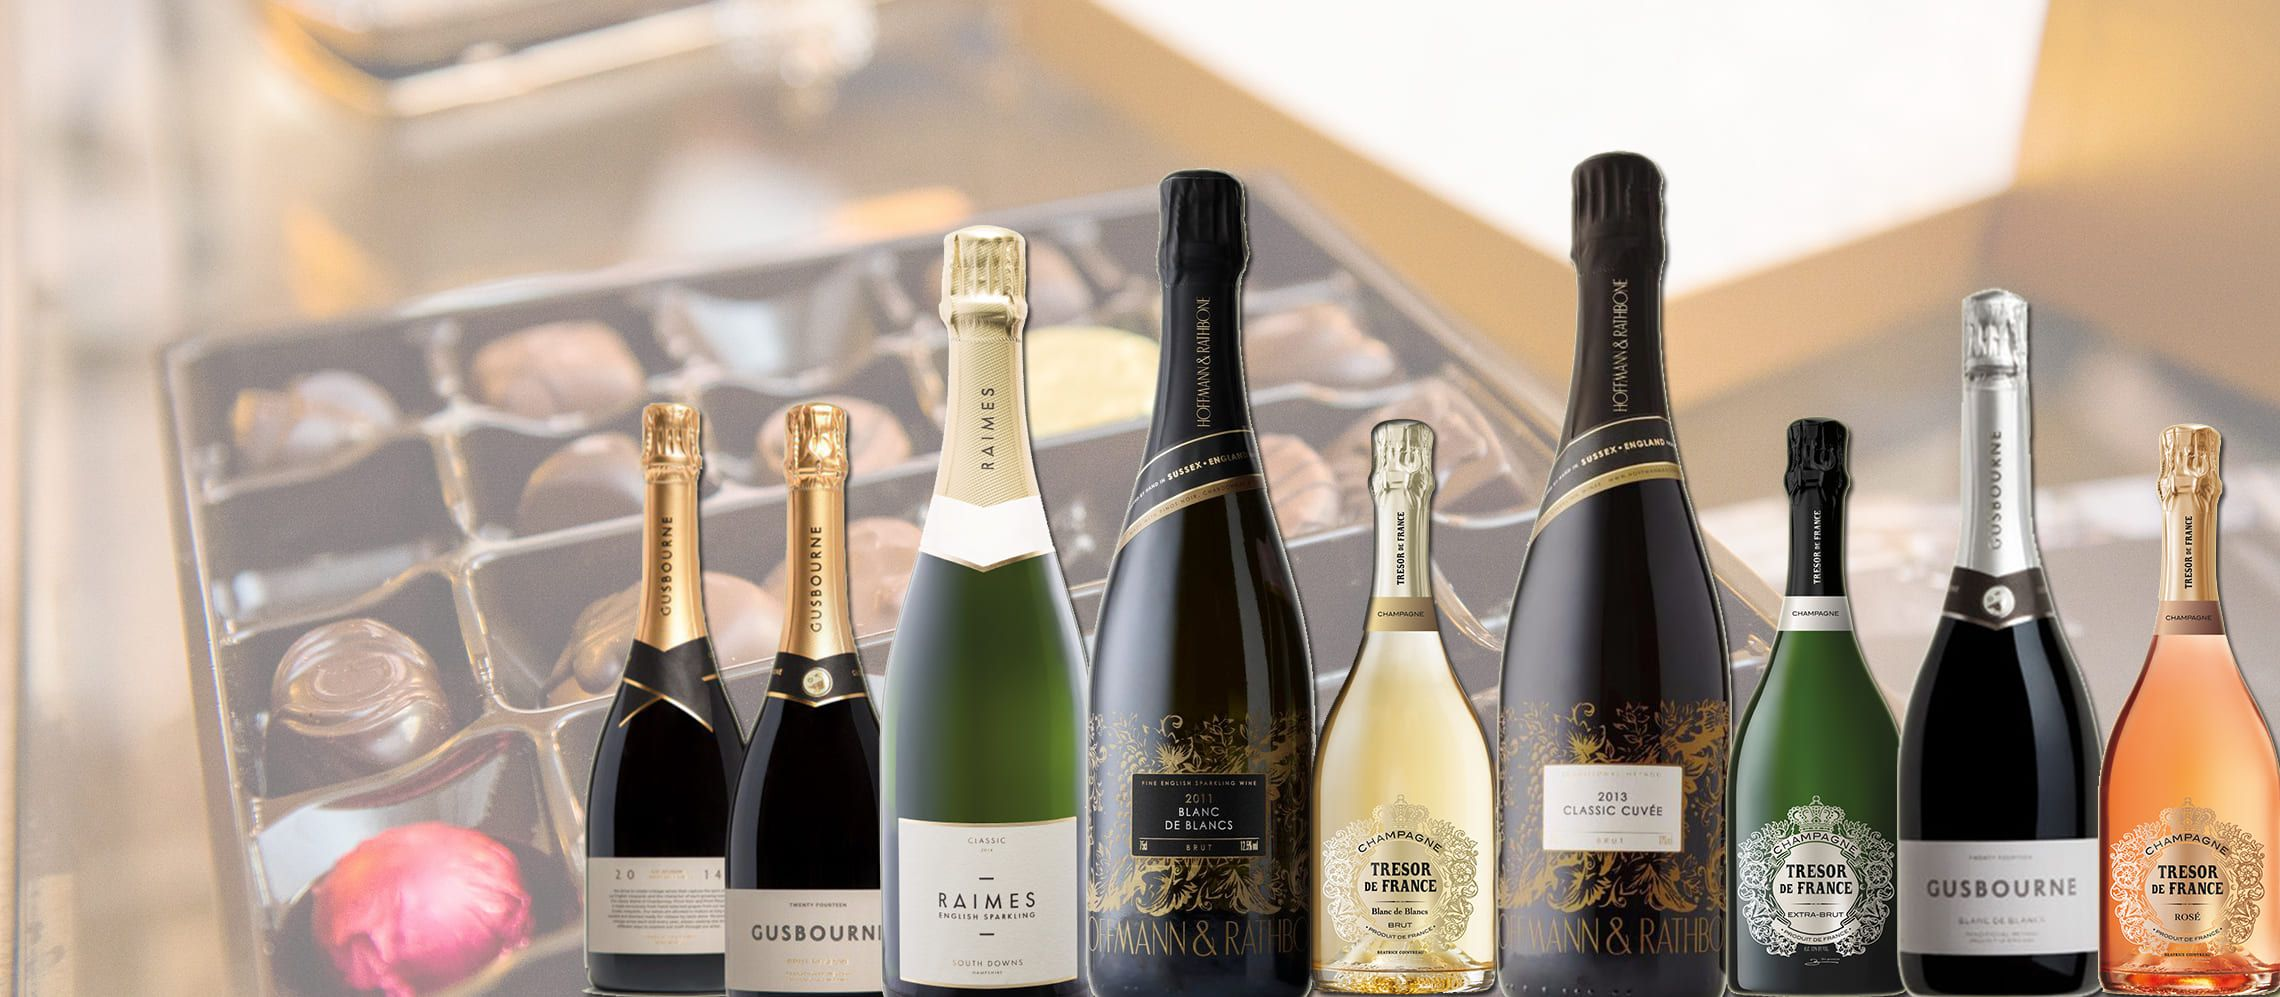 Photo for: Best Wines to Drink This Valentine's Day